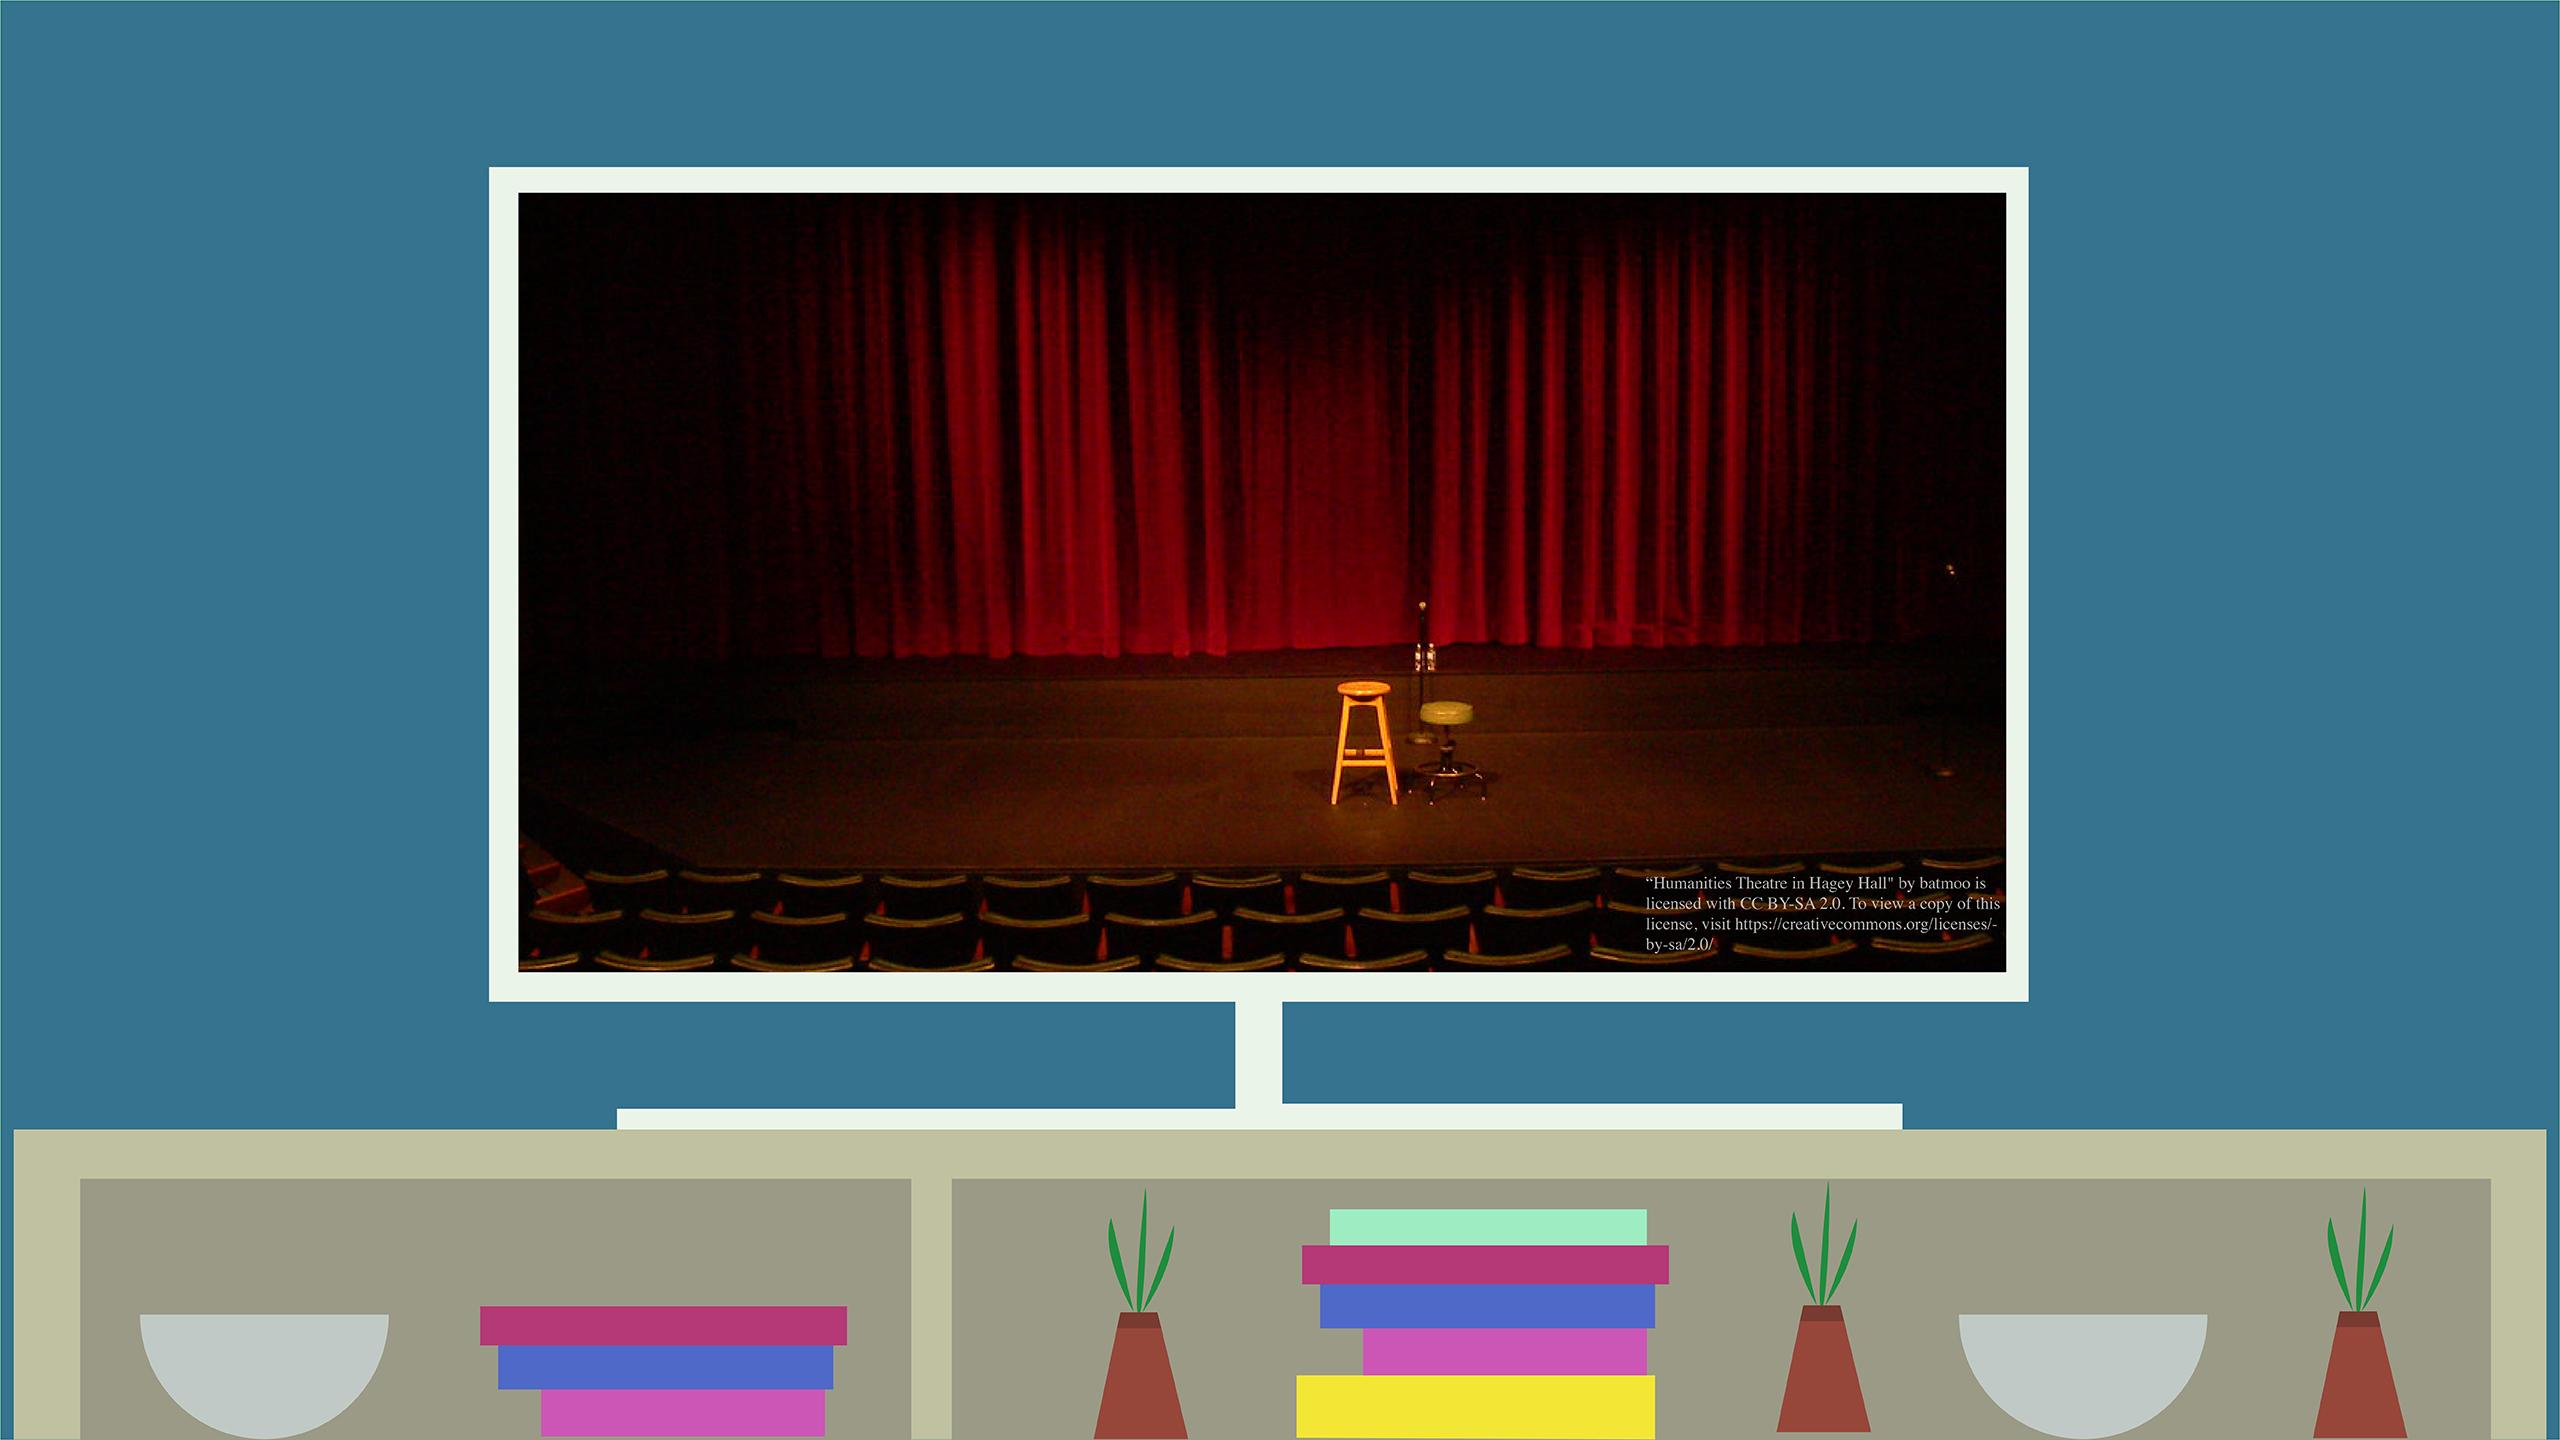 An illustration of a TV sitting on a TV stand. On the screen, it shows a theatre stage with a stool and mic.